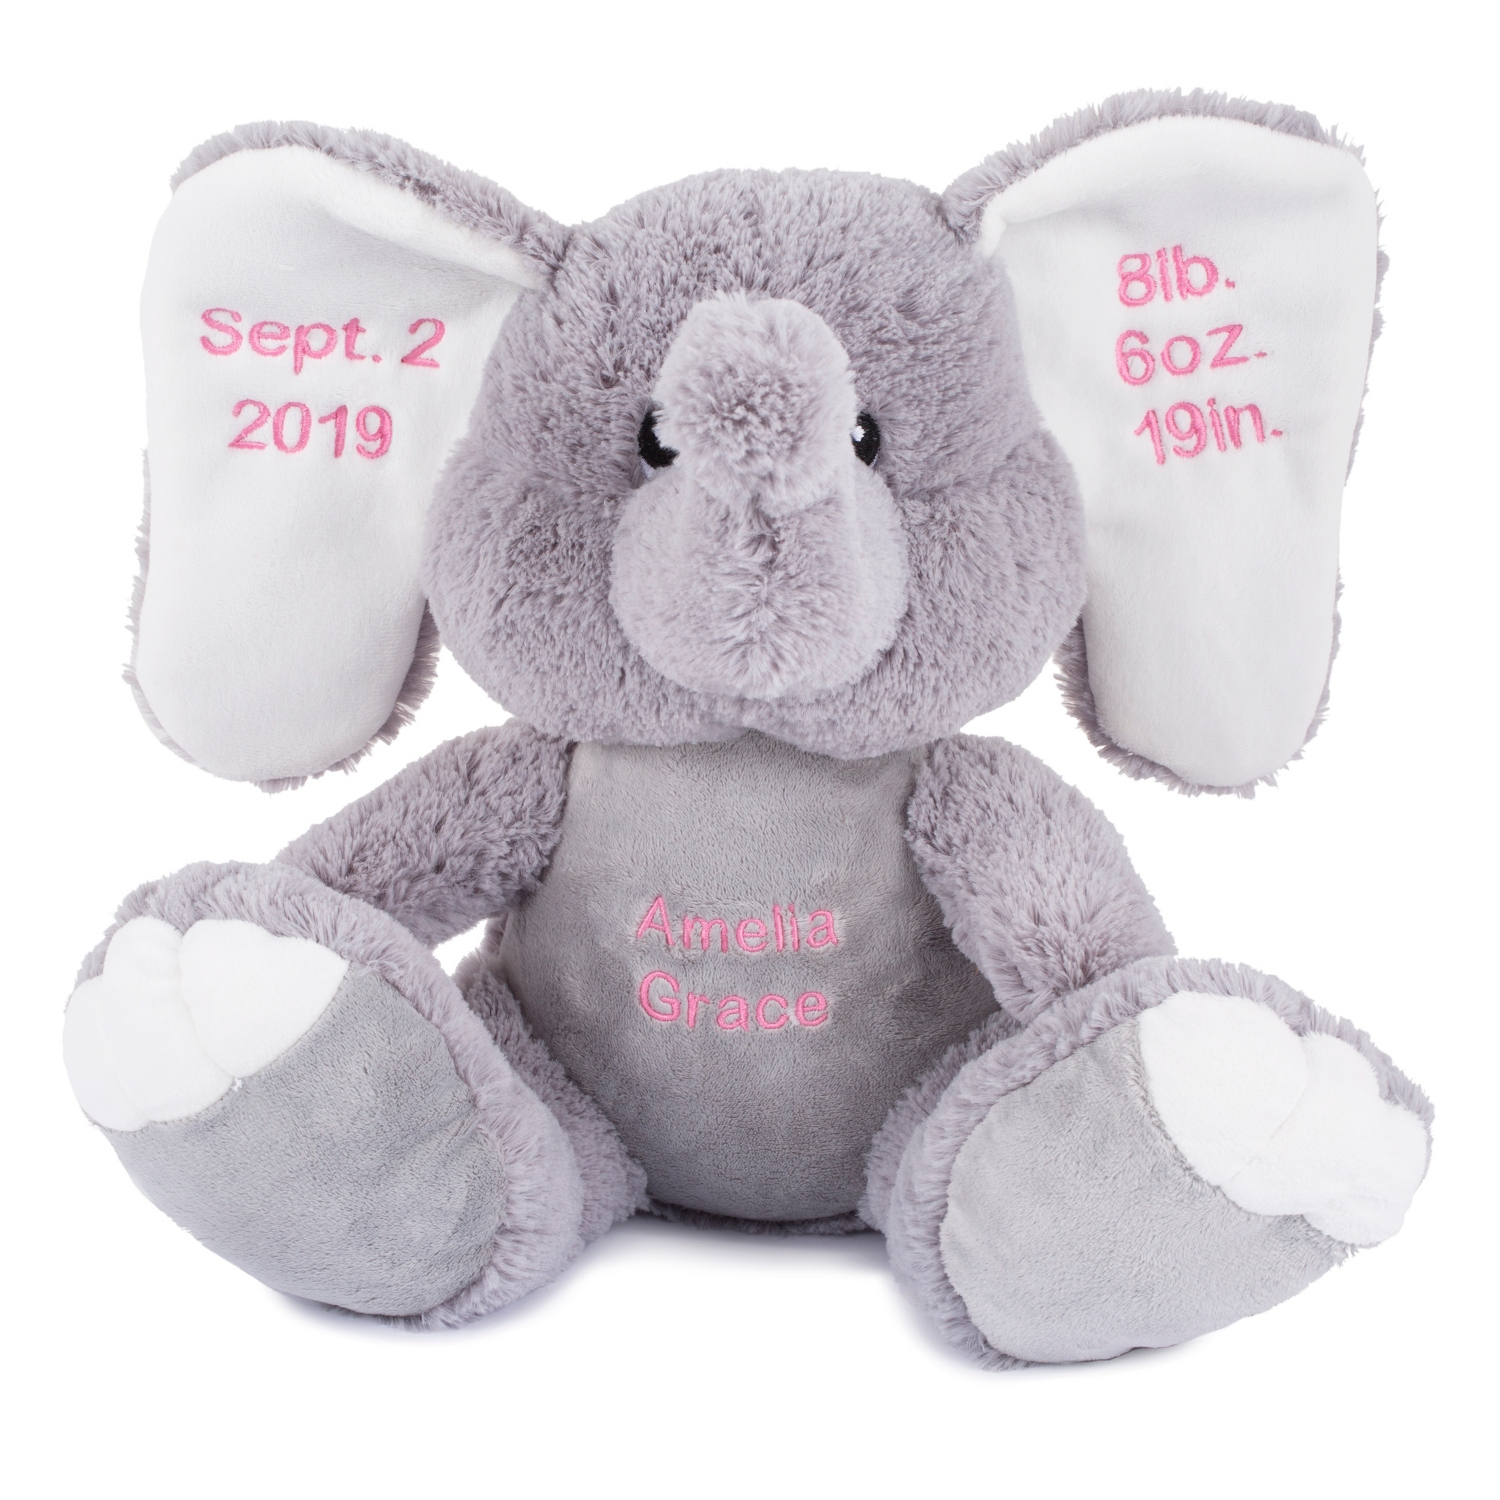 Personalized gifts for babies and newborns at things remembered plush elephant plush elephant negle Images